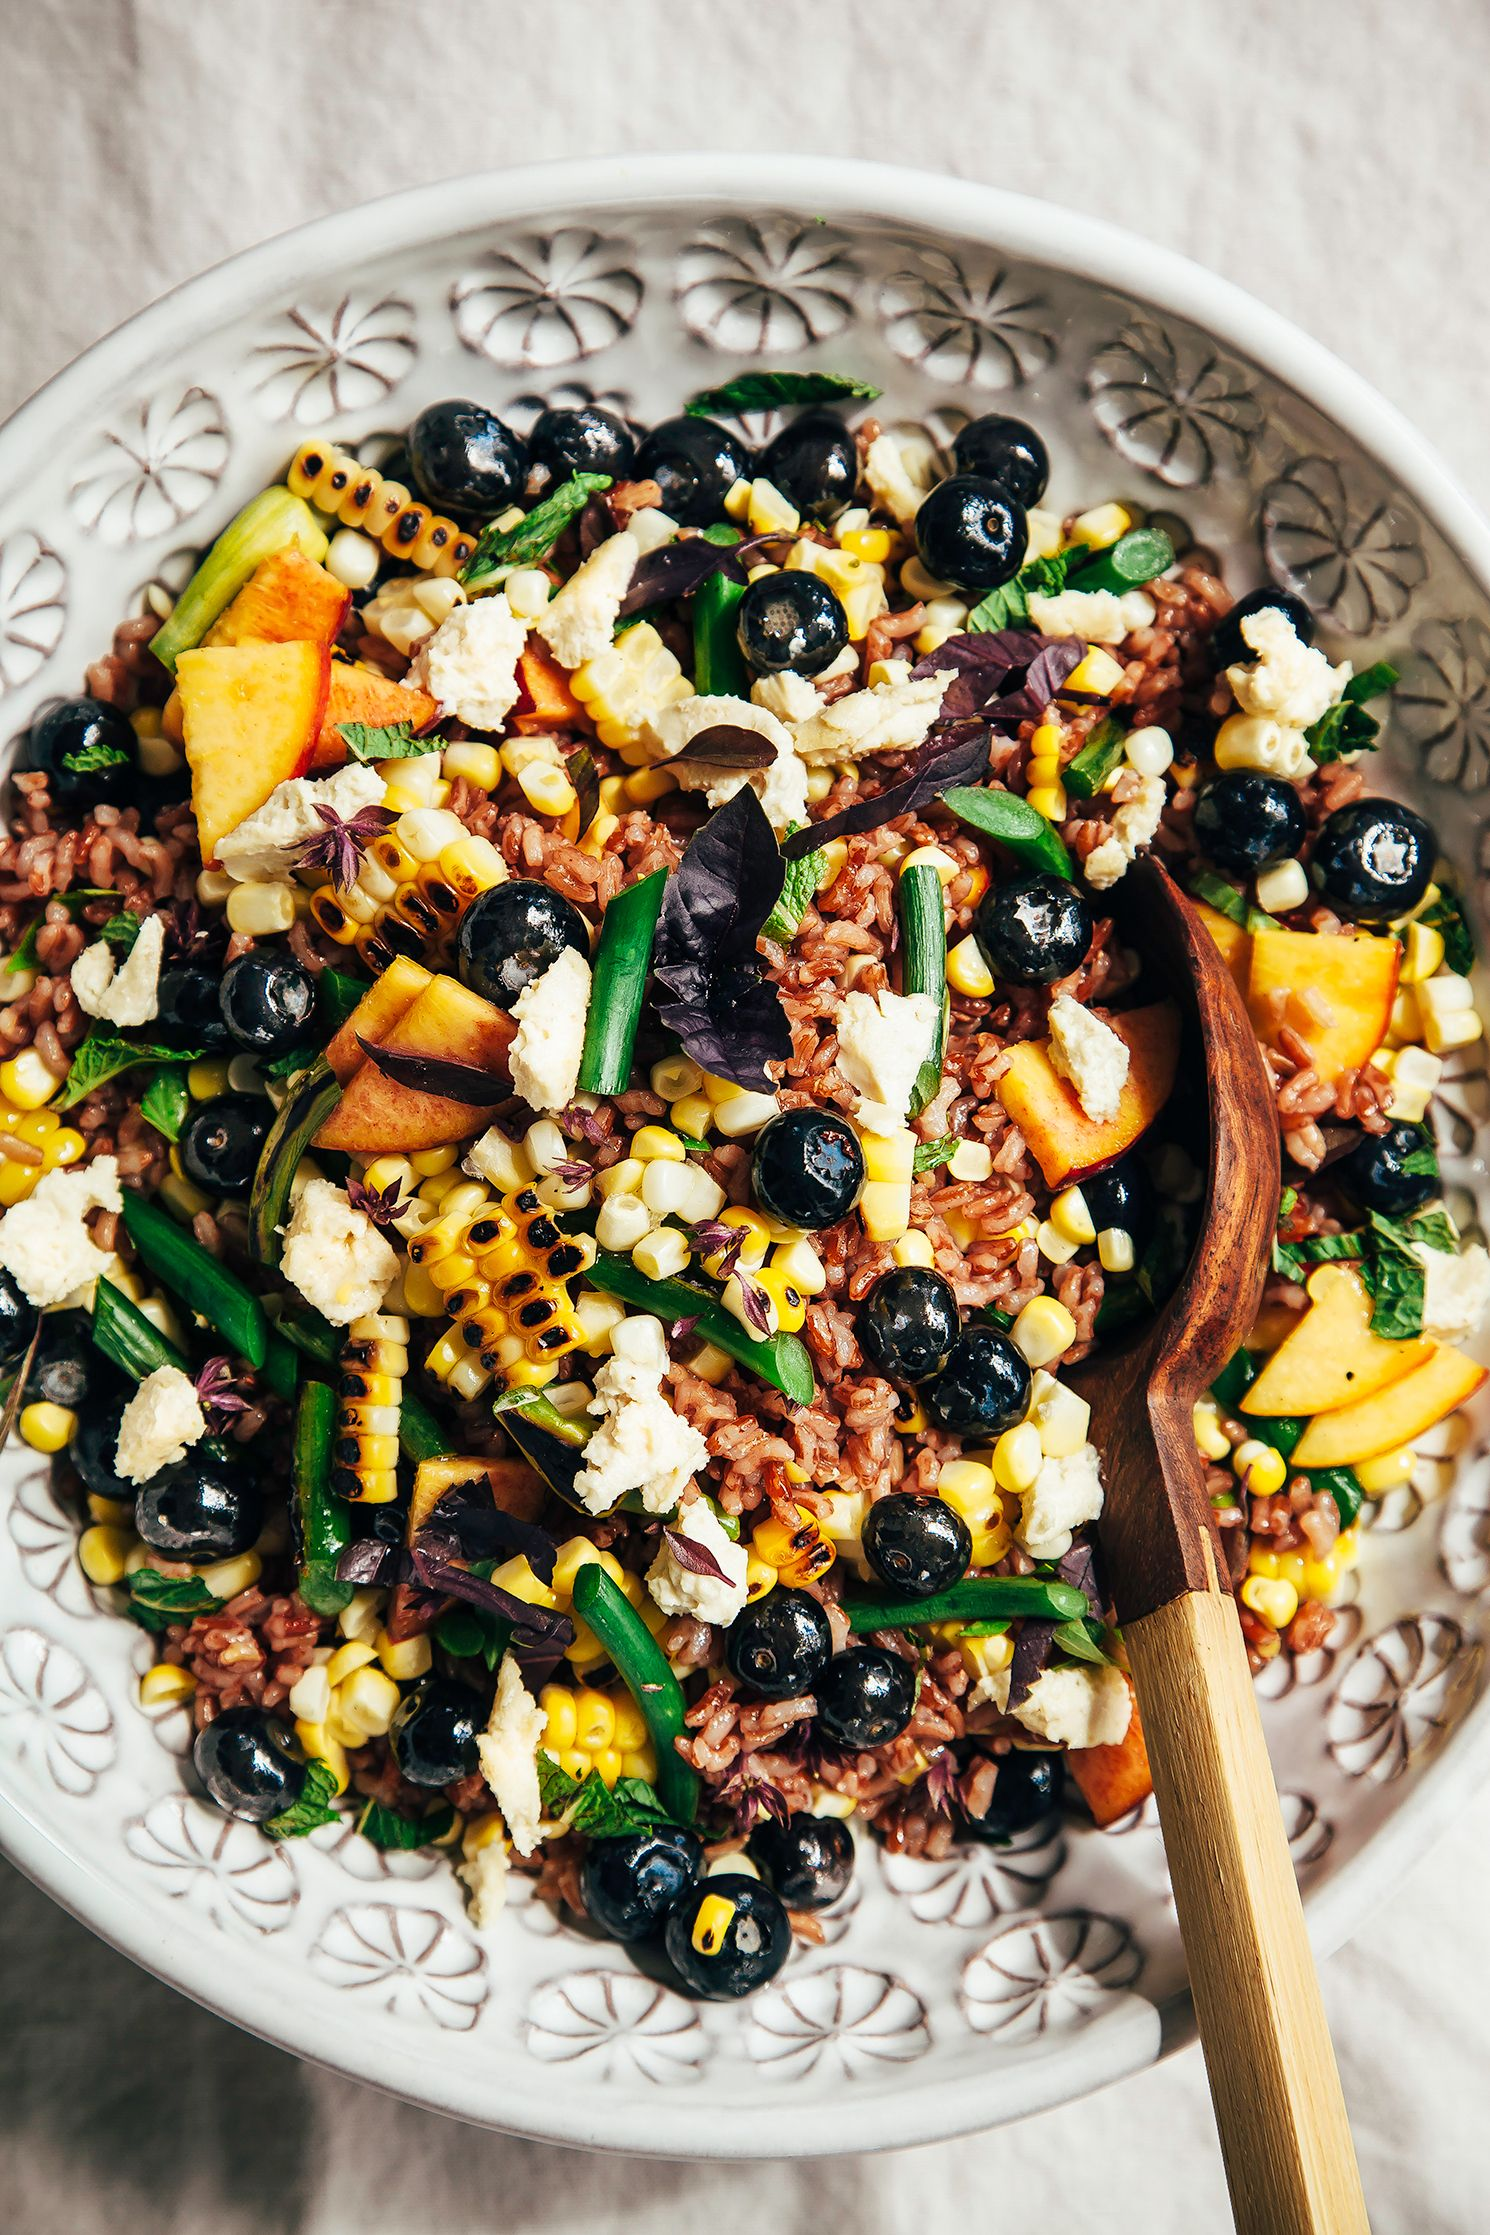 Summer picnic salad with blueberries vegan feta pinterest summer picnic salad with blueberries vegan feta the first mess forumfinder Gallery